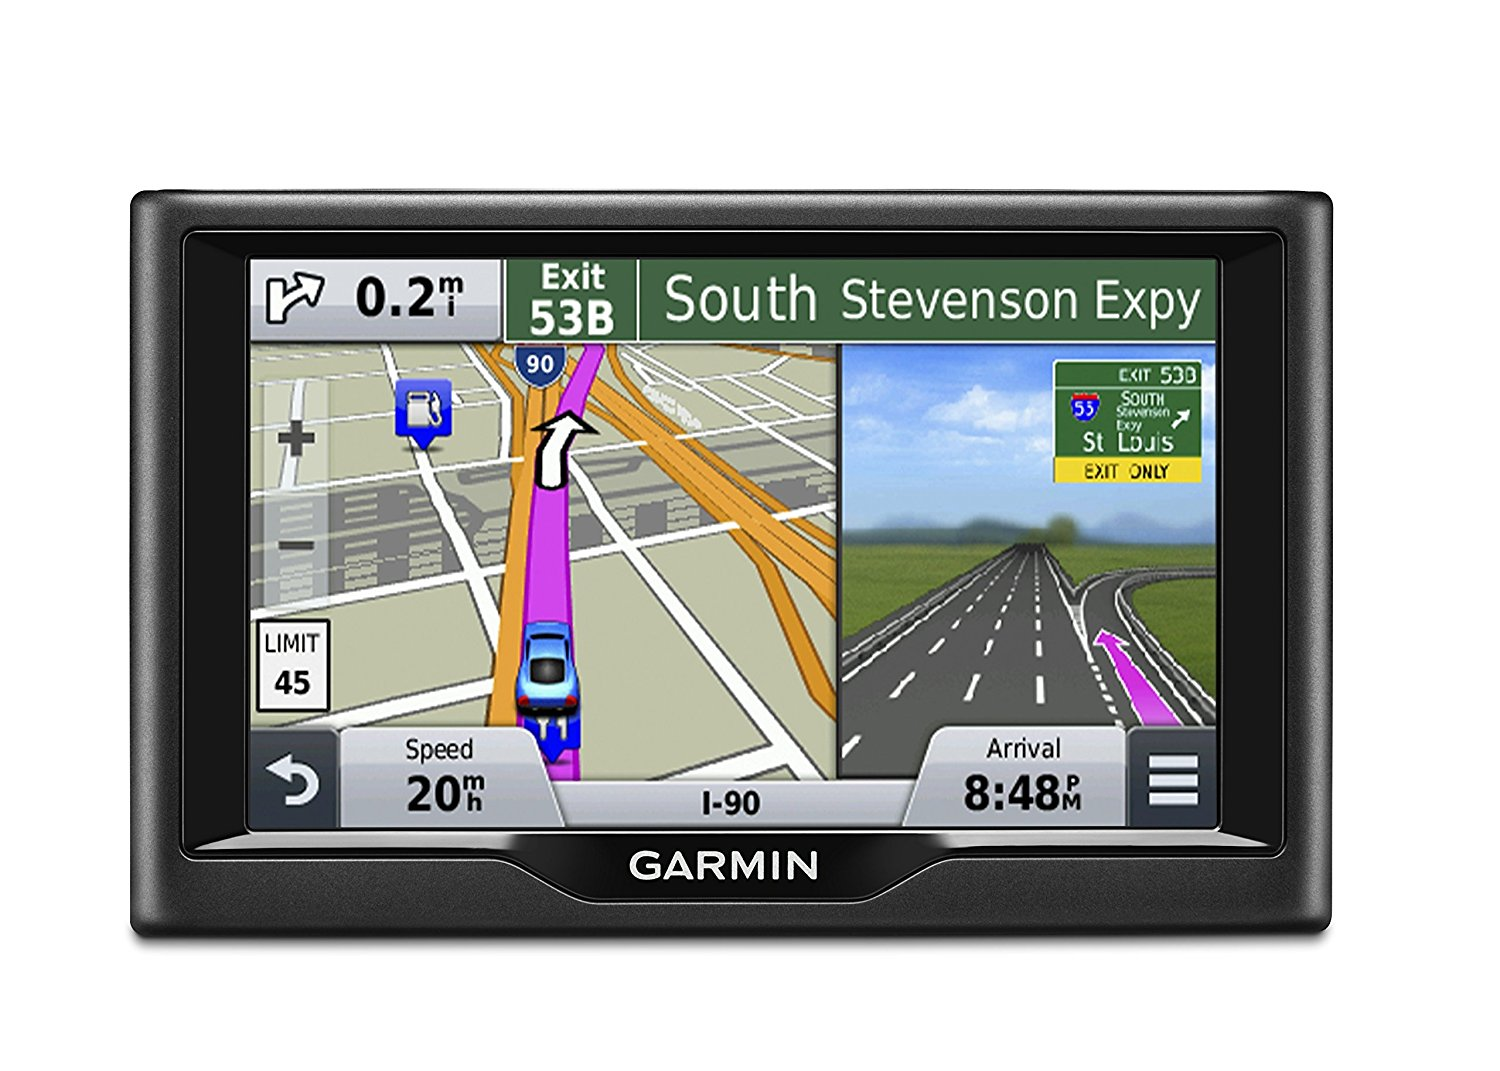 Garmin Nuvi 57LM GPS with Spoken Turn-By-Turn Directions, 5 inch display, Lifetime Map Updates, Direct Access, and Speed Limit Displays